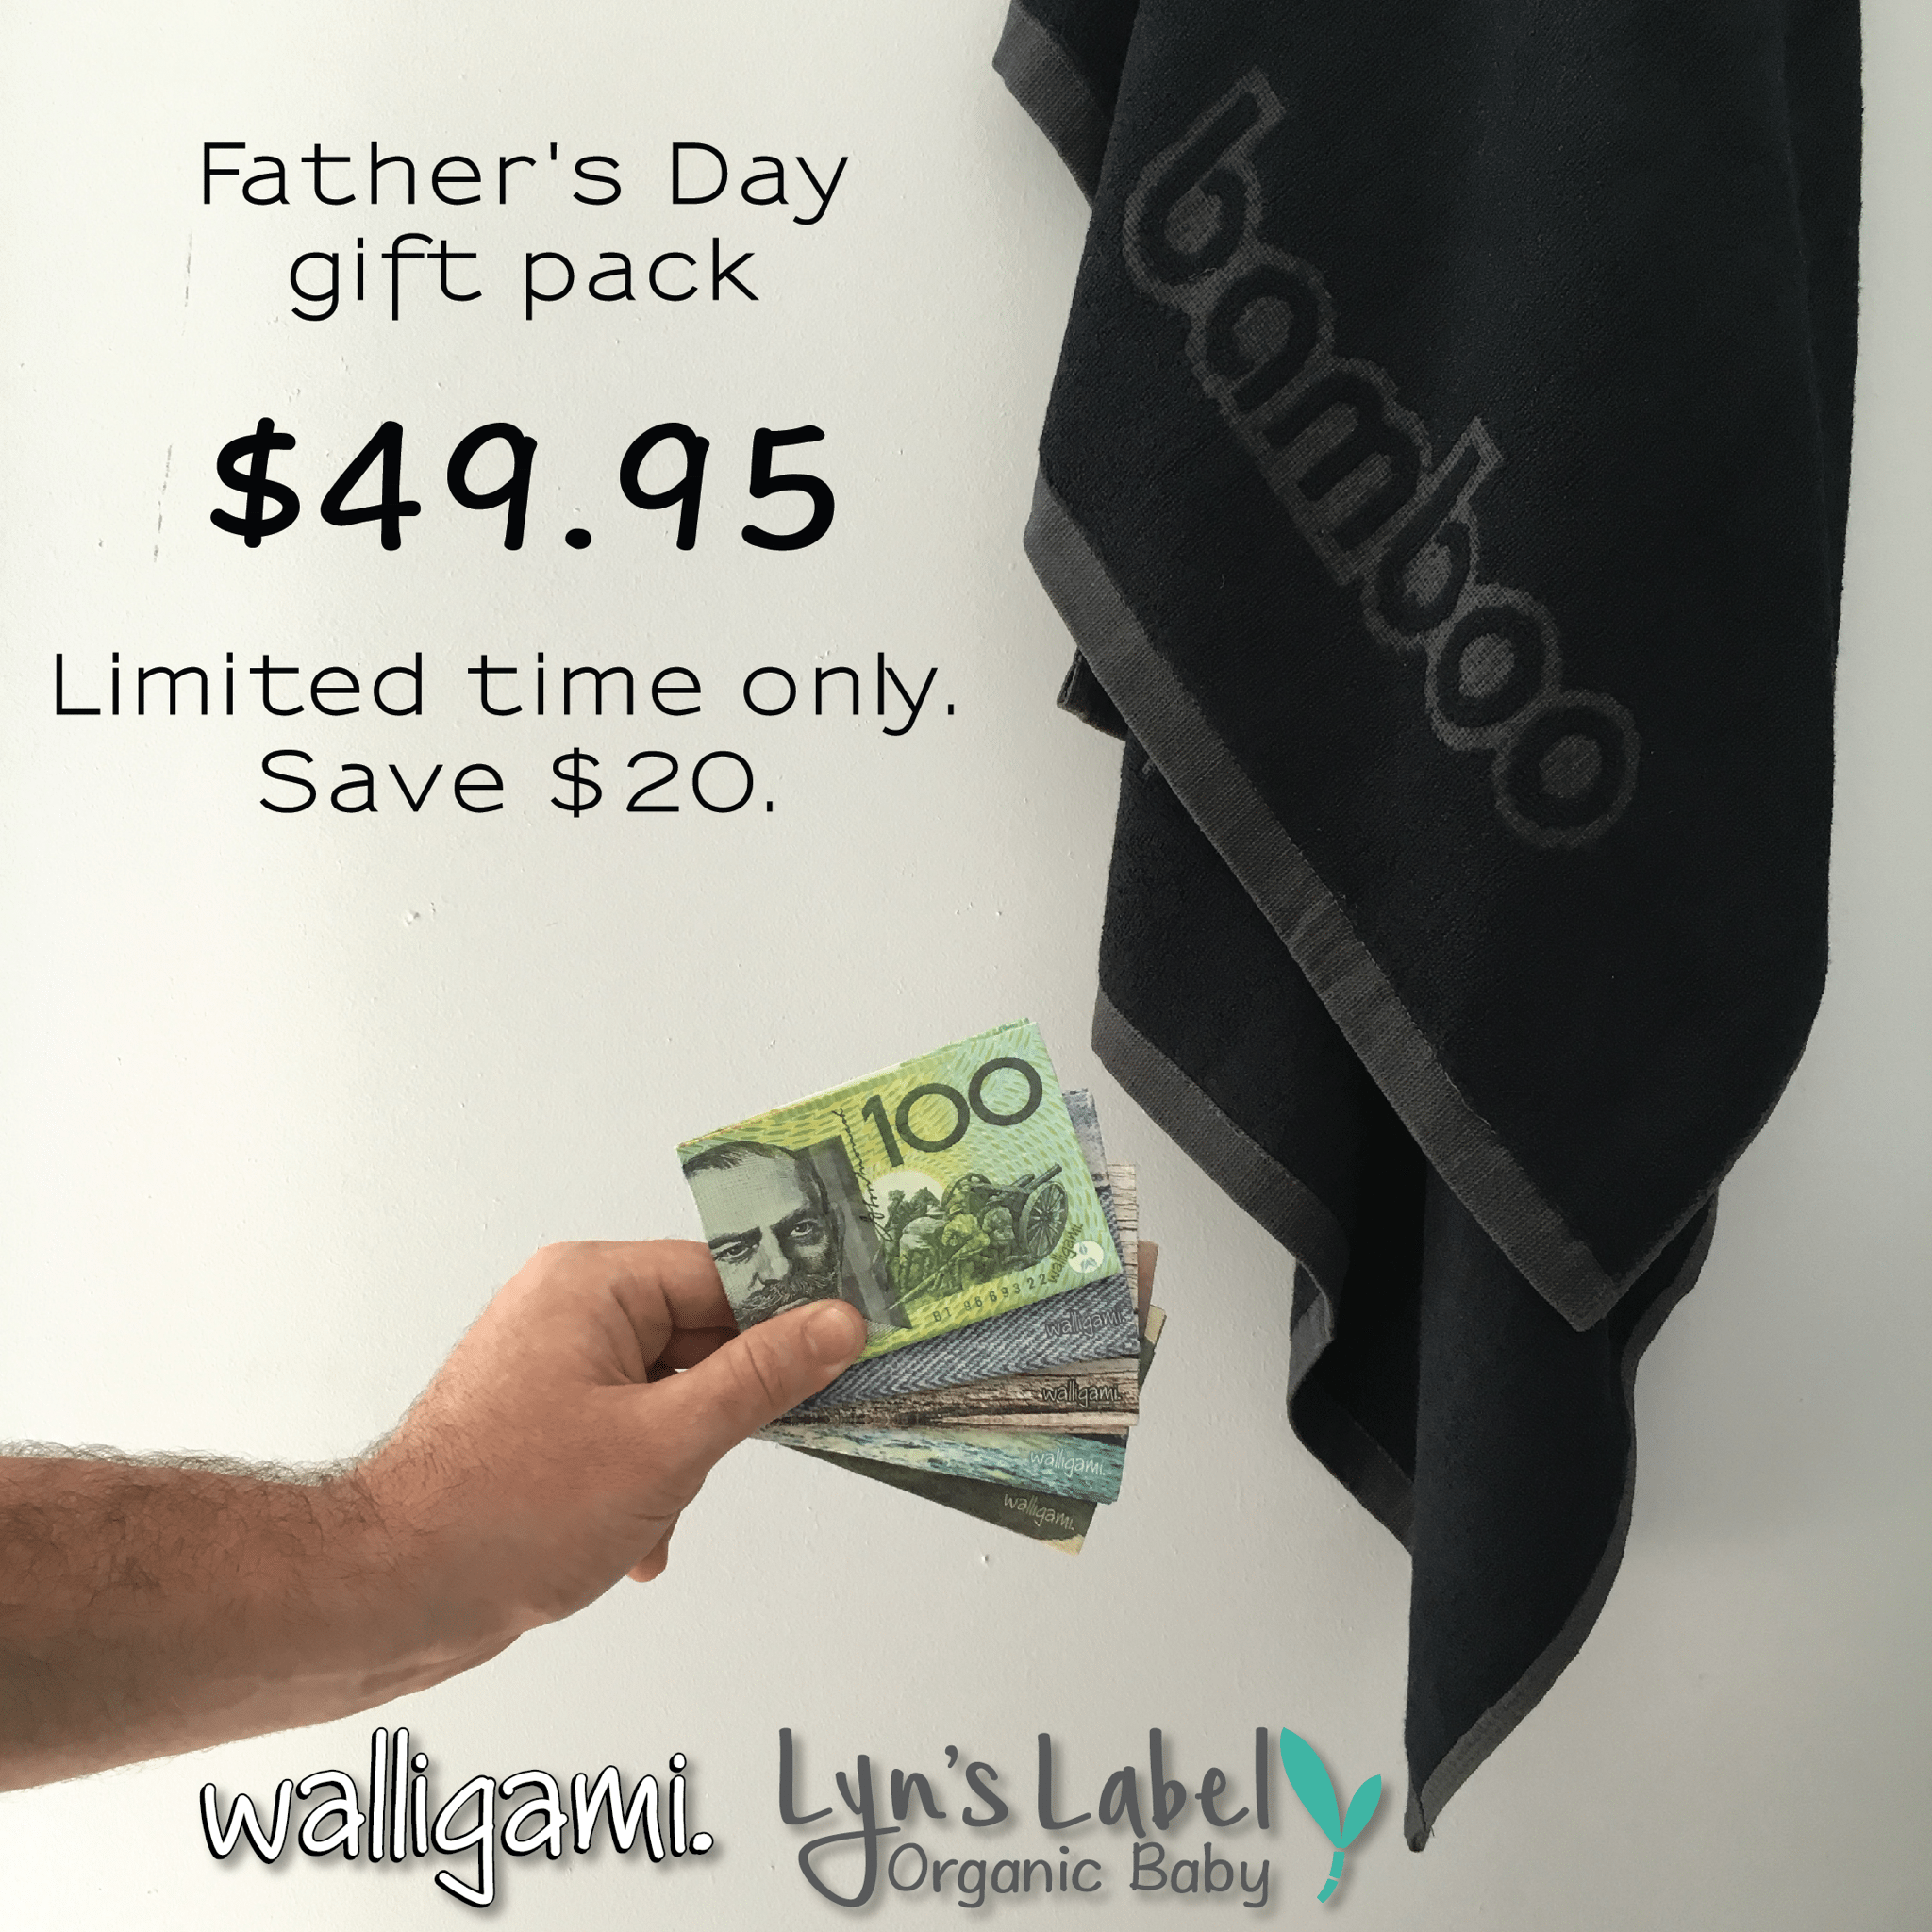 fathers day gift pack, wallet, towel, bamboo